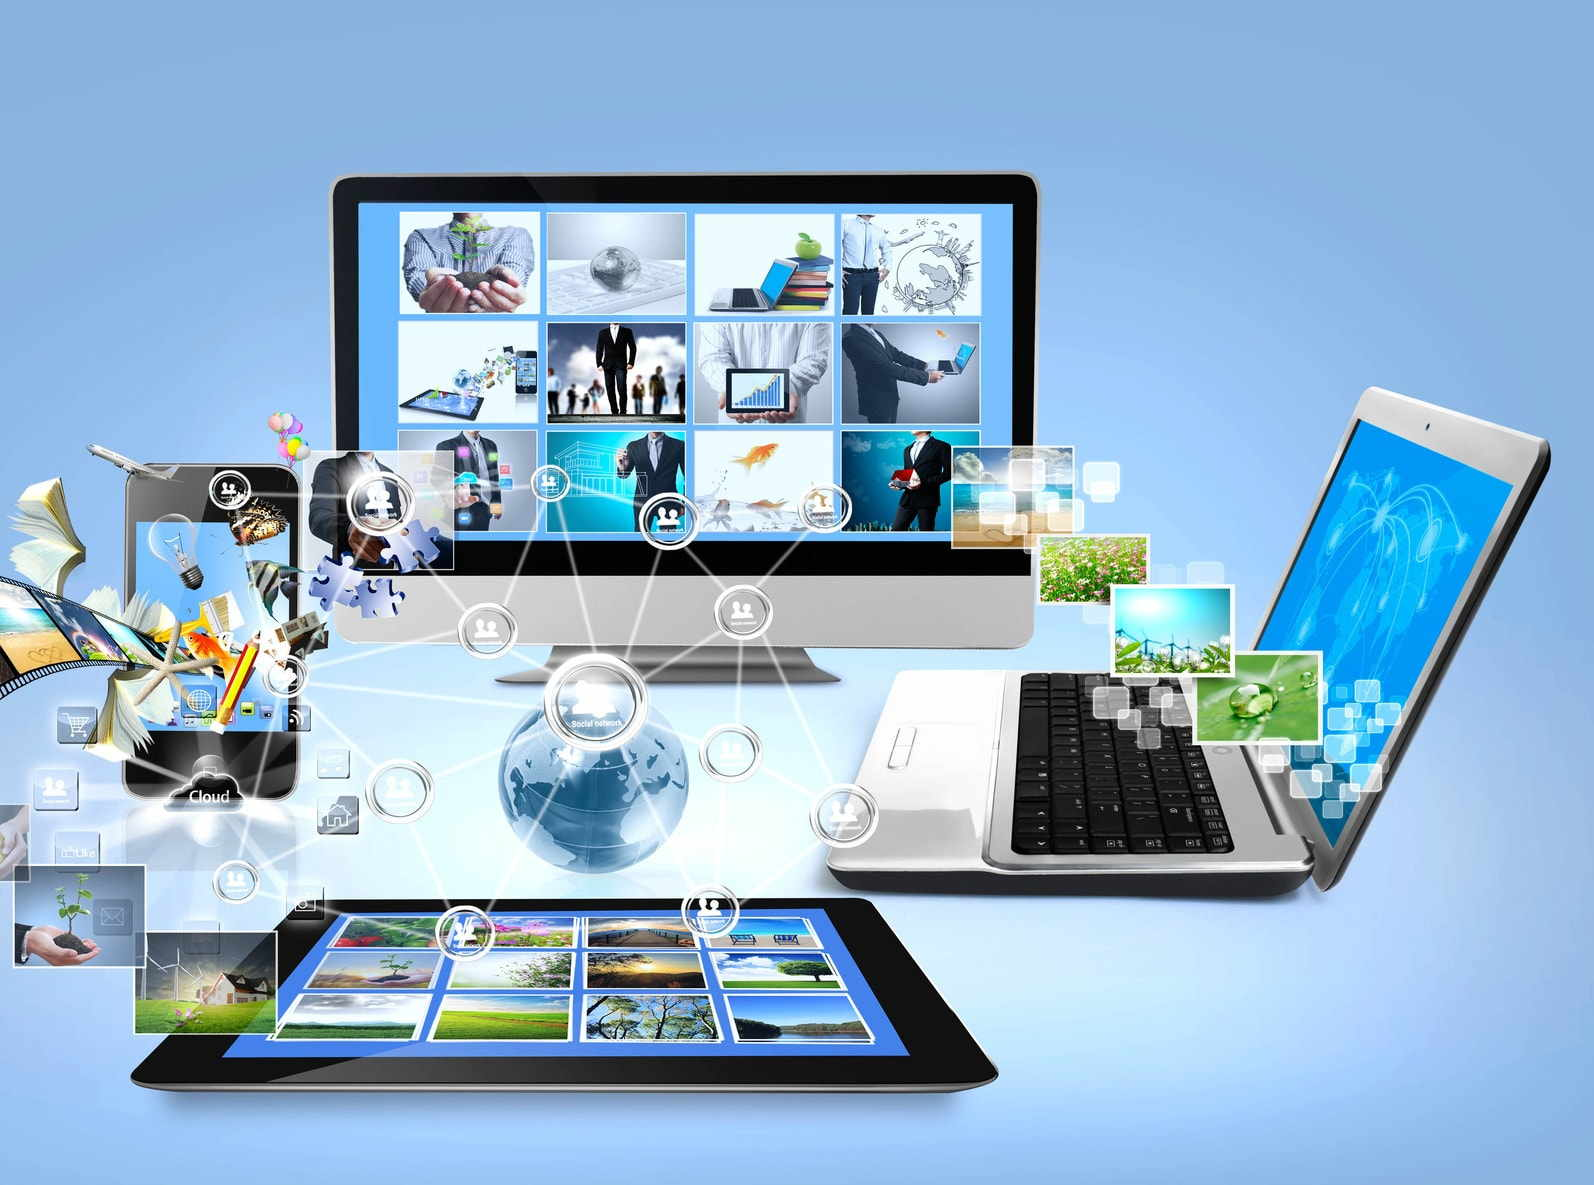 how technology simplifies modern life Technology simplifies modern life this essay will argue against the notion or statement that technology simplifies modern life the subsequent paragraphs will outline the negative impacts technology has had on life.